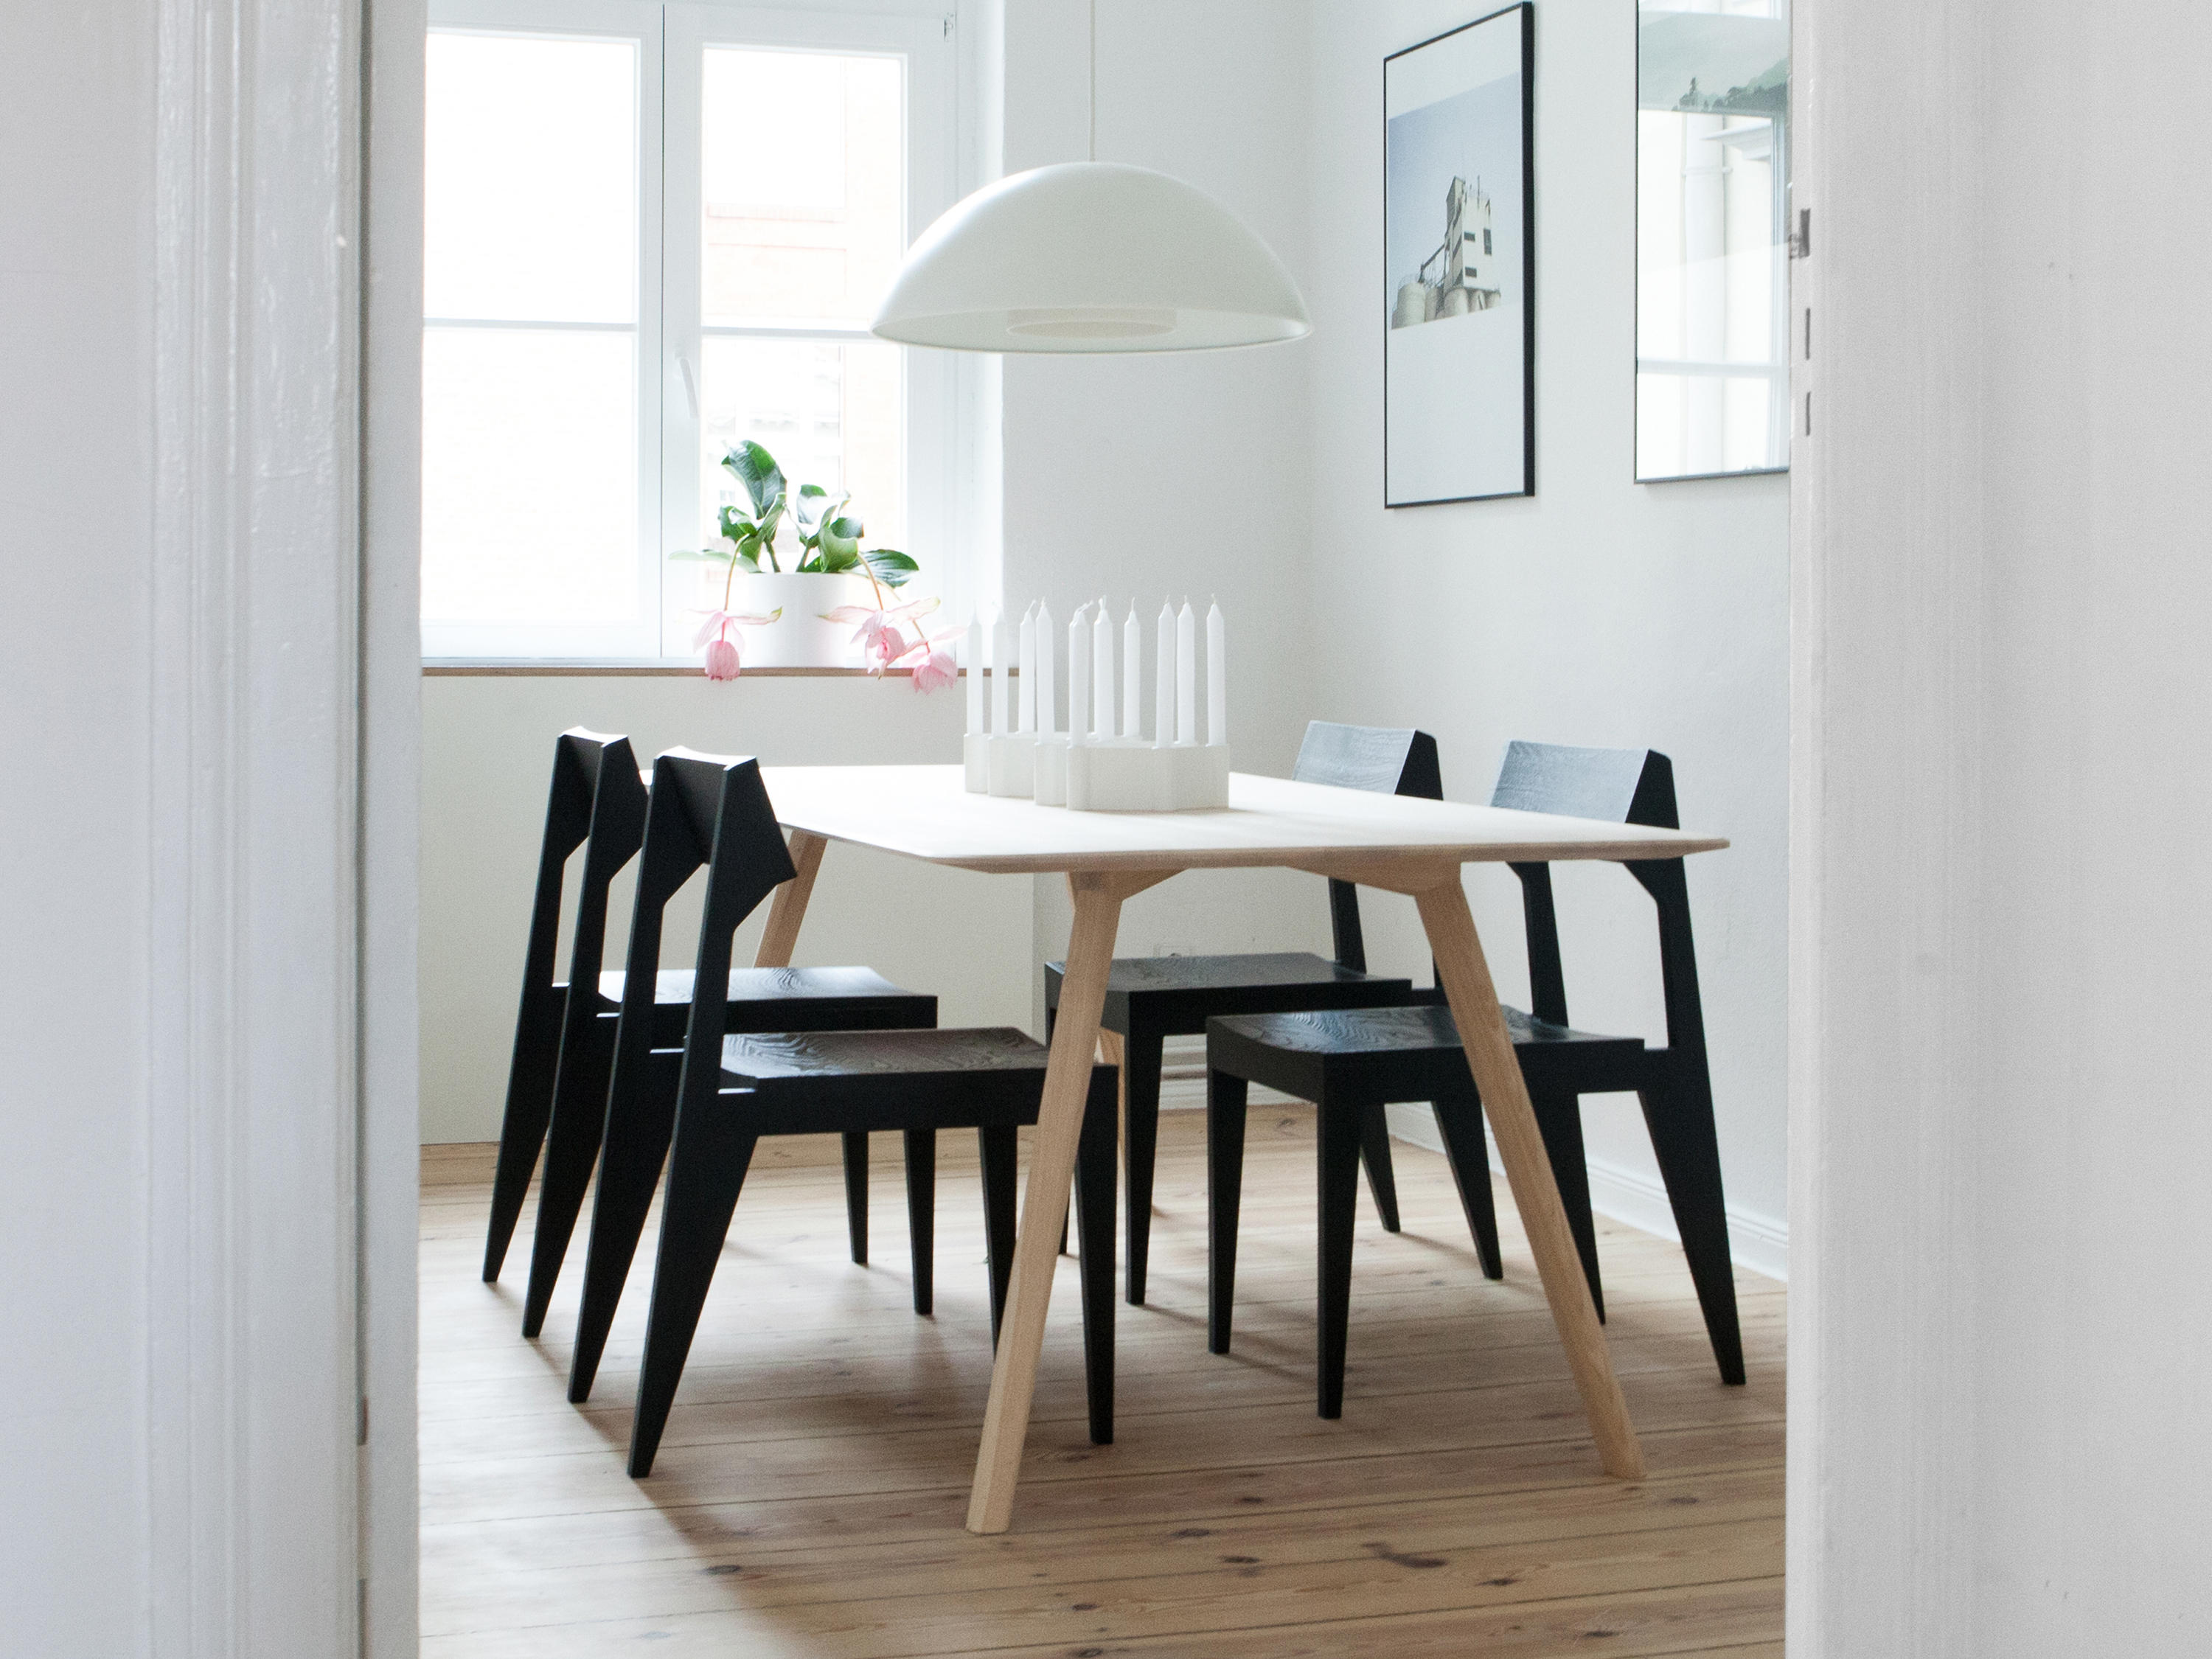 MEYER ˜ 92 Dining tables from Objekte unserer Tage